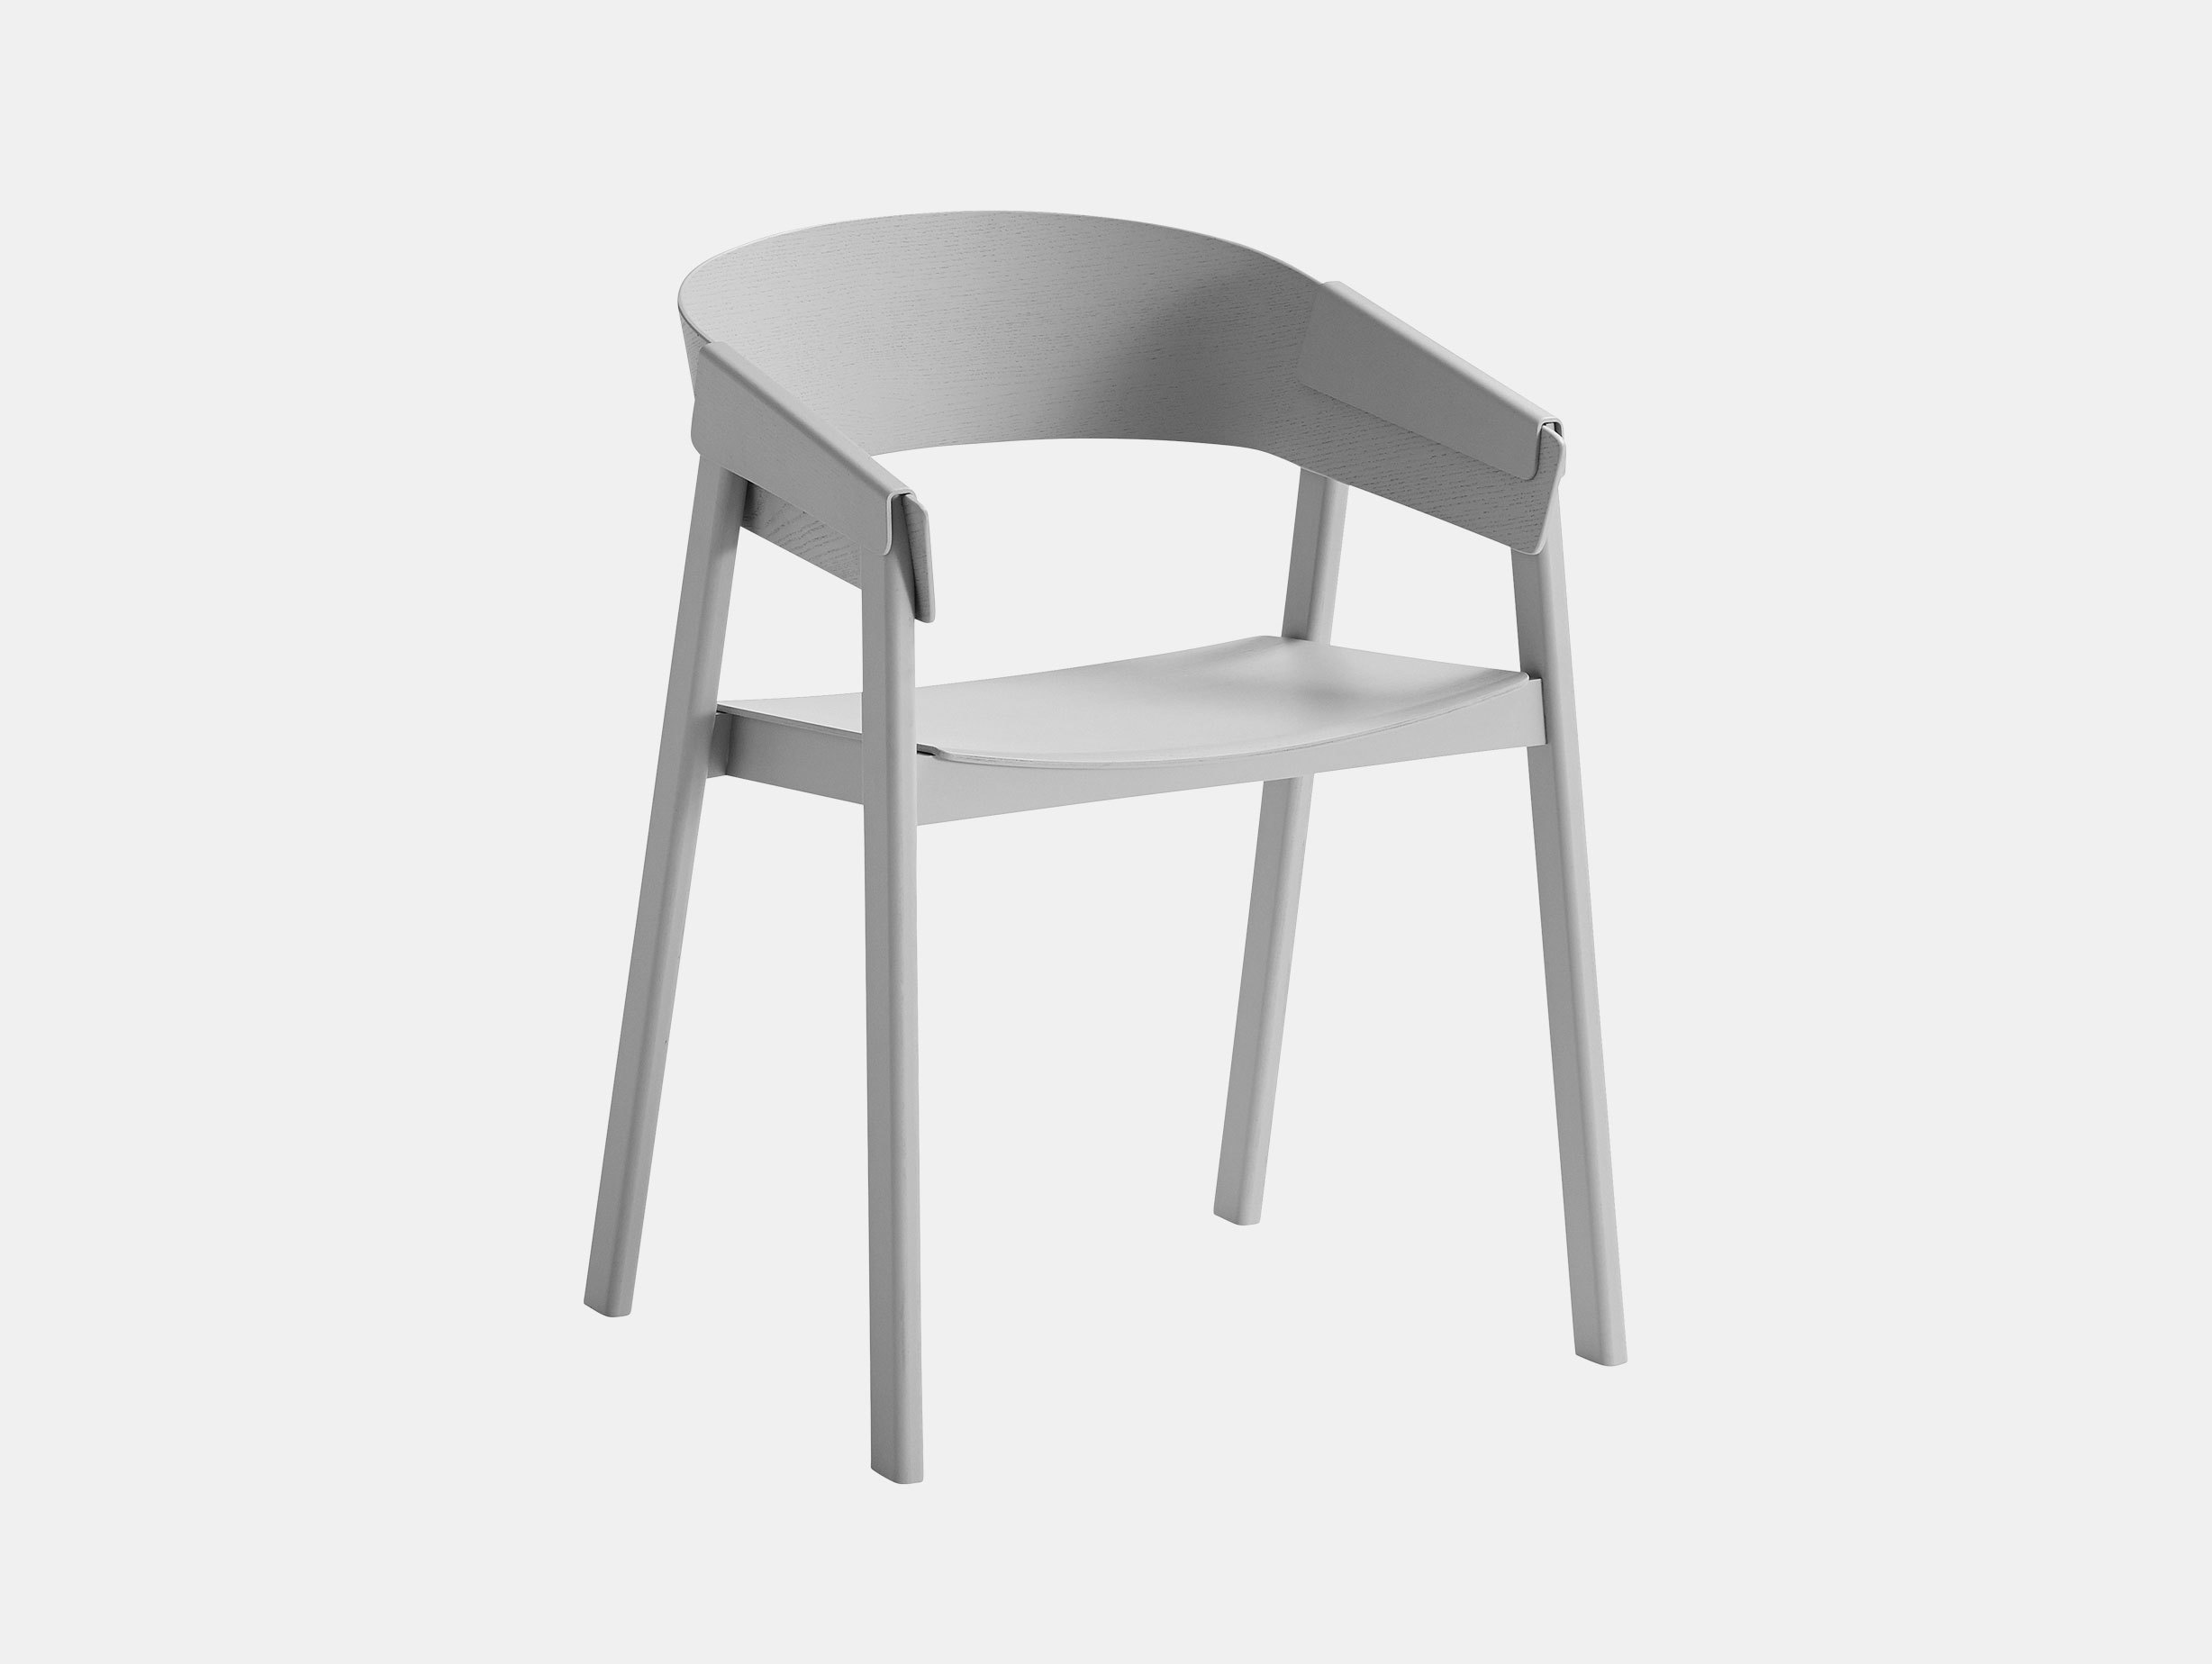 Cover Chair image 2